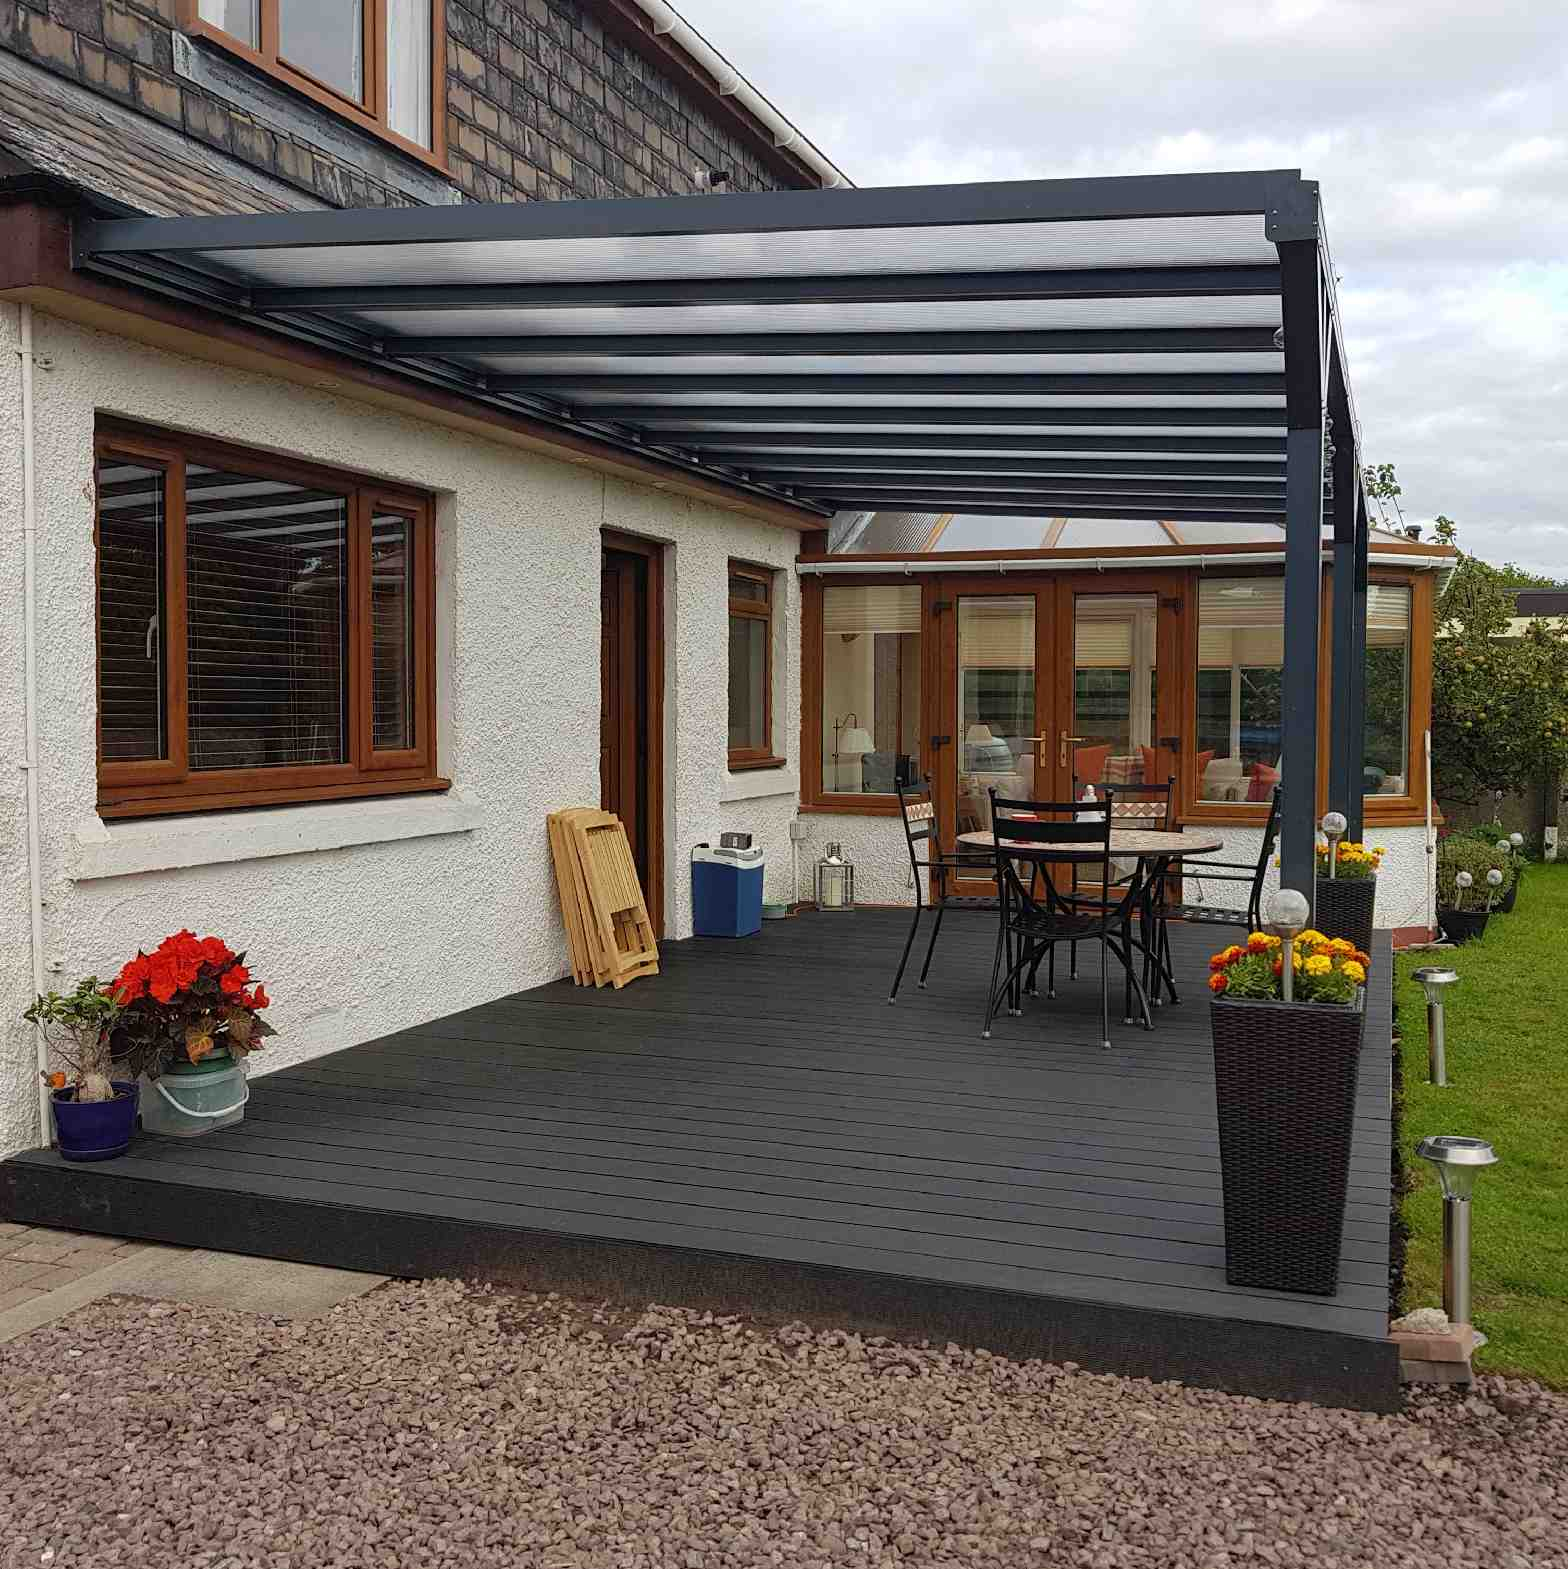 Buy Omega Verandah, Anthracite Grey, 16mm Polycarbonate Glazing - 4.2m (W) x 2.0m (P), (3) Supporting Posts online today